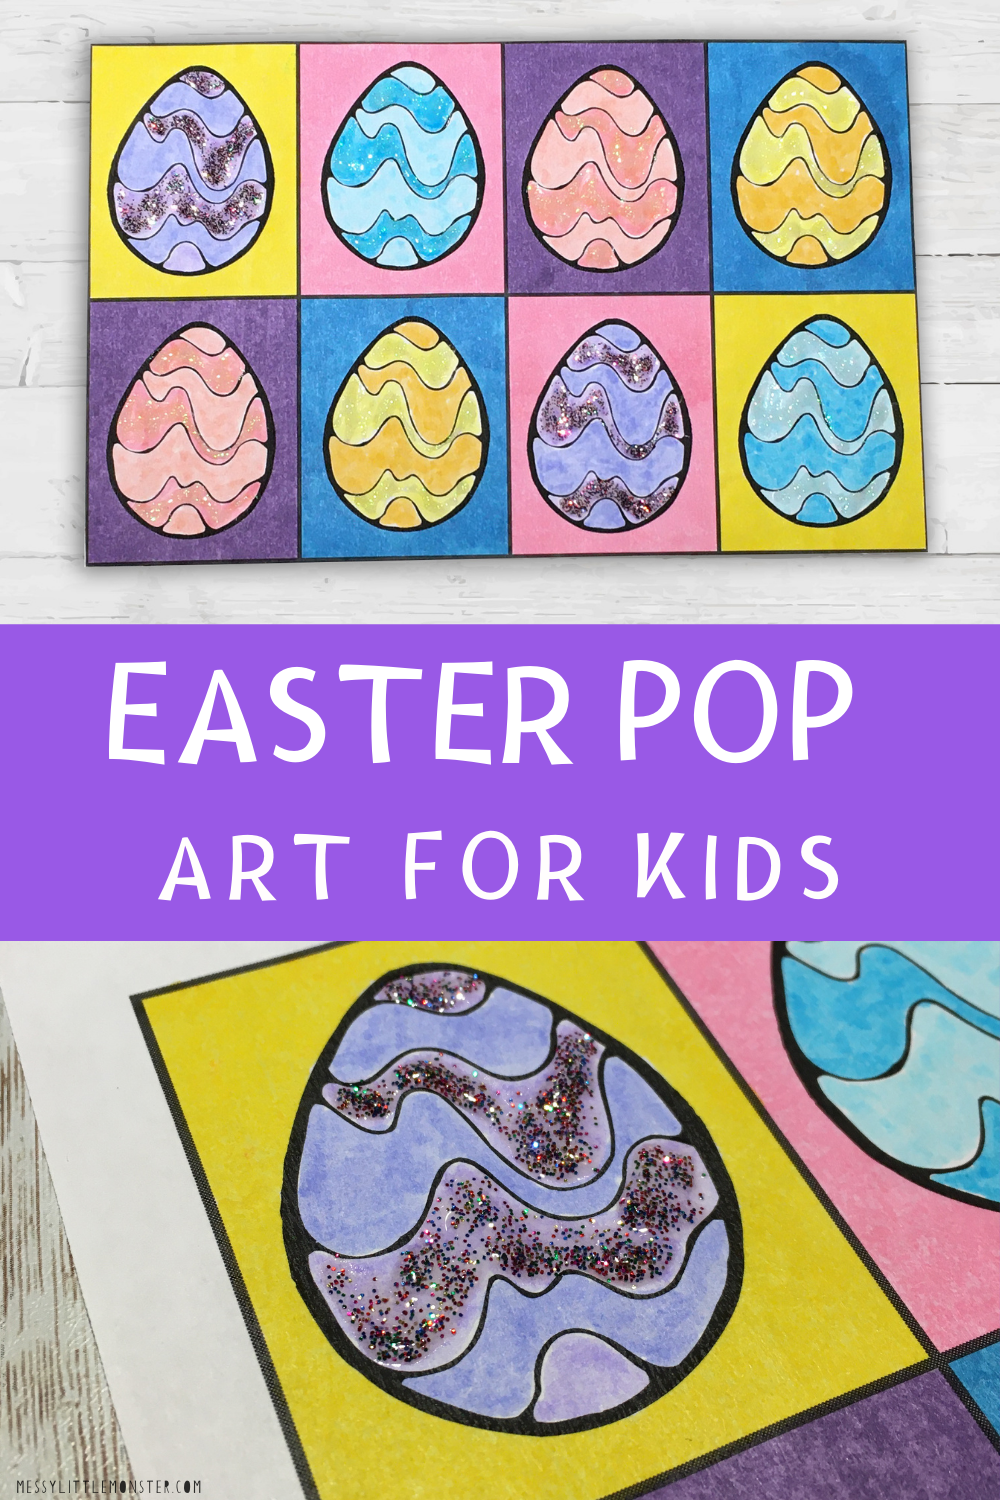 Easter pop art for kids. Andy warhol inspired art project.